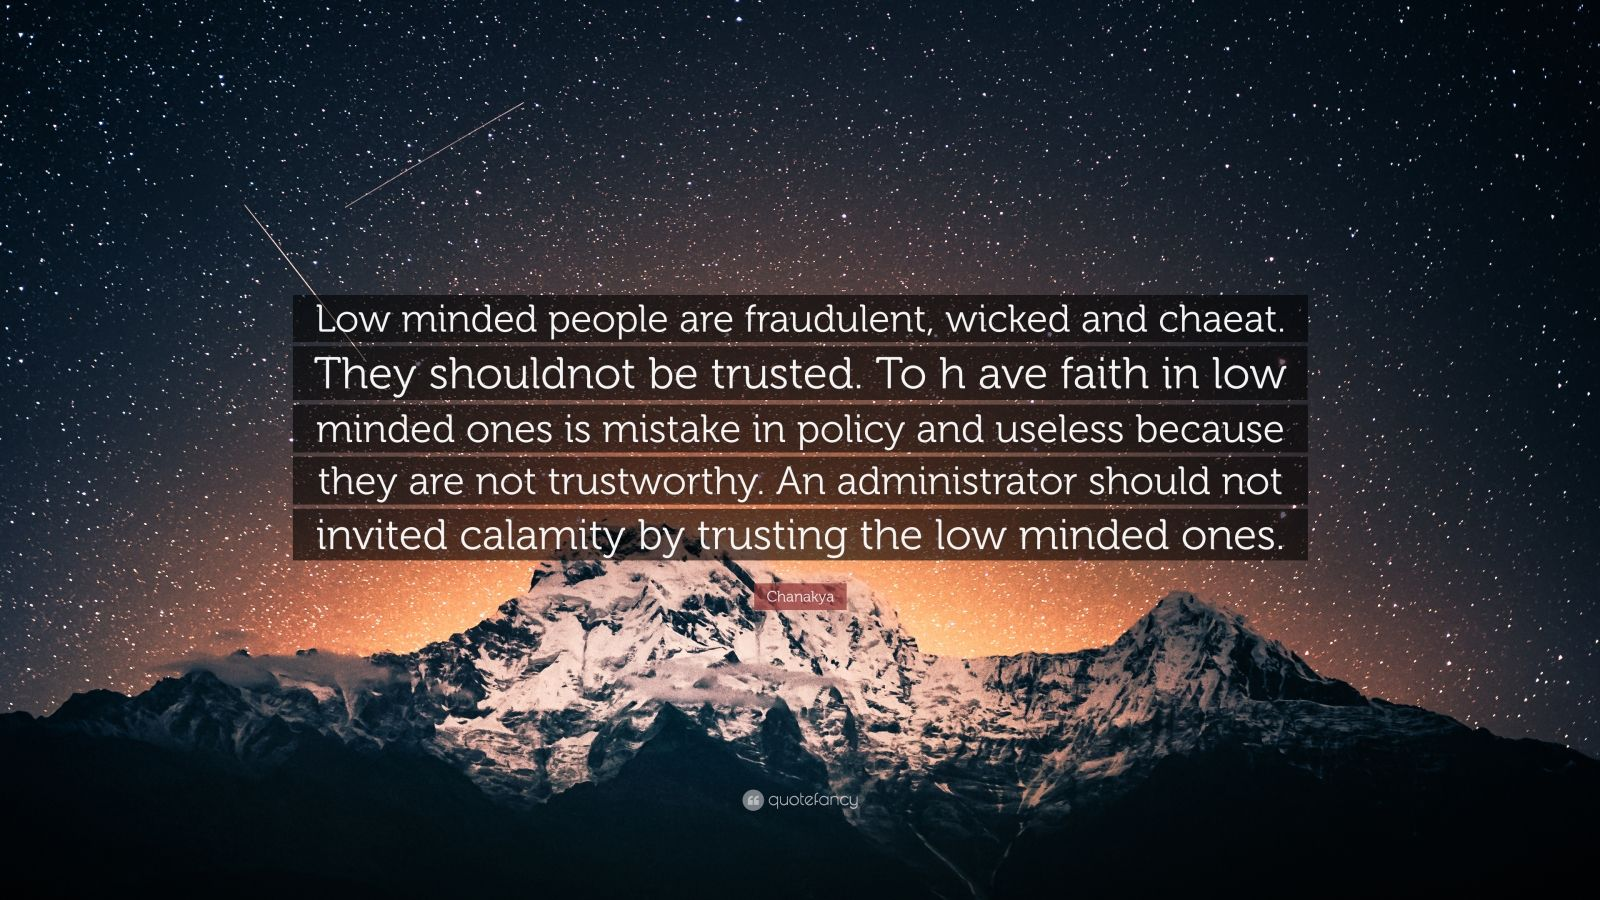 """Chanakya Quote: """"Low minded people are fraudulent, wicked and chaeat. They shouldnot be trusted. To h ave faith in low minded ones is mistake in policy and useless because they are not trustworthy. An administrator should not invited calamity by trusting the low minded ones."""""""